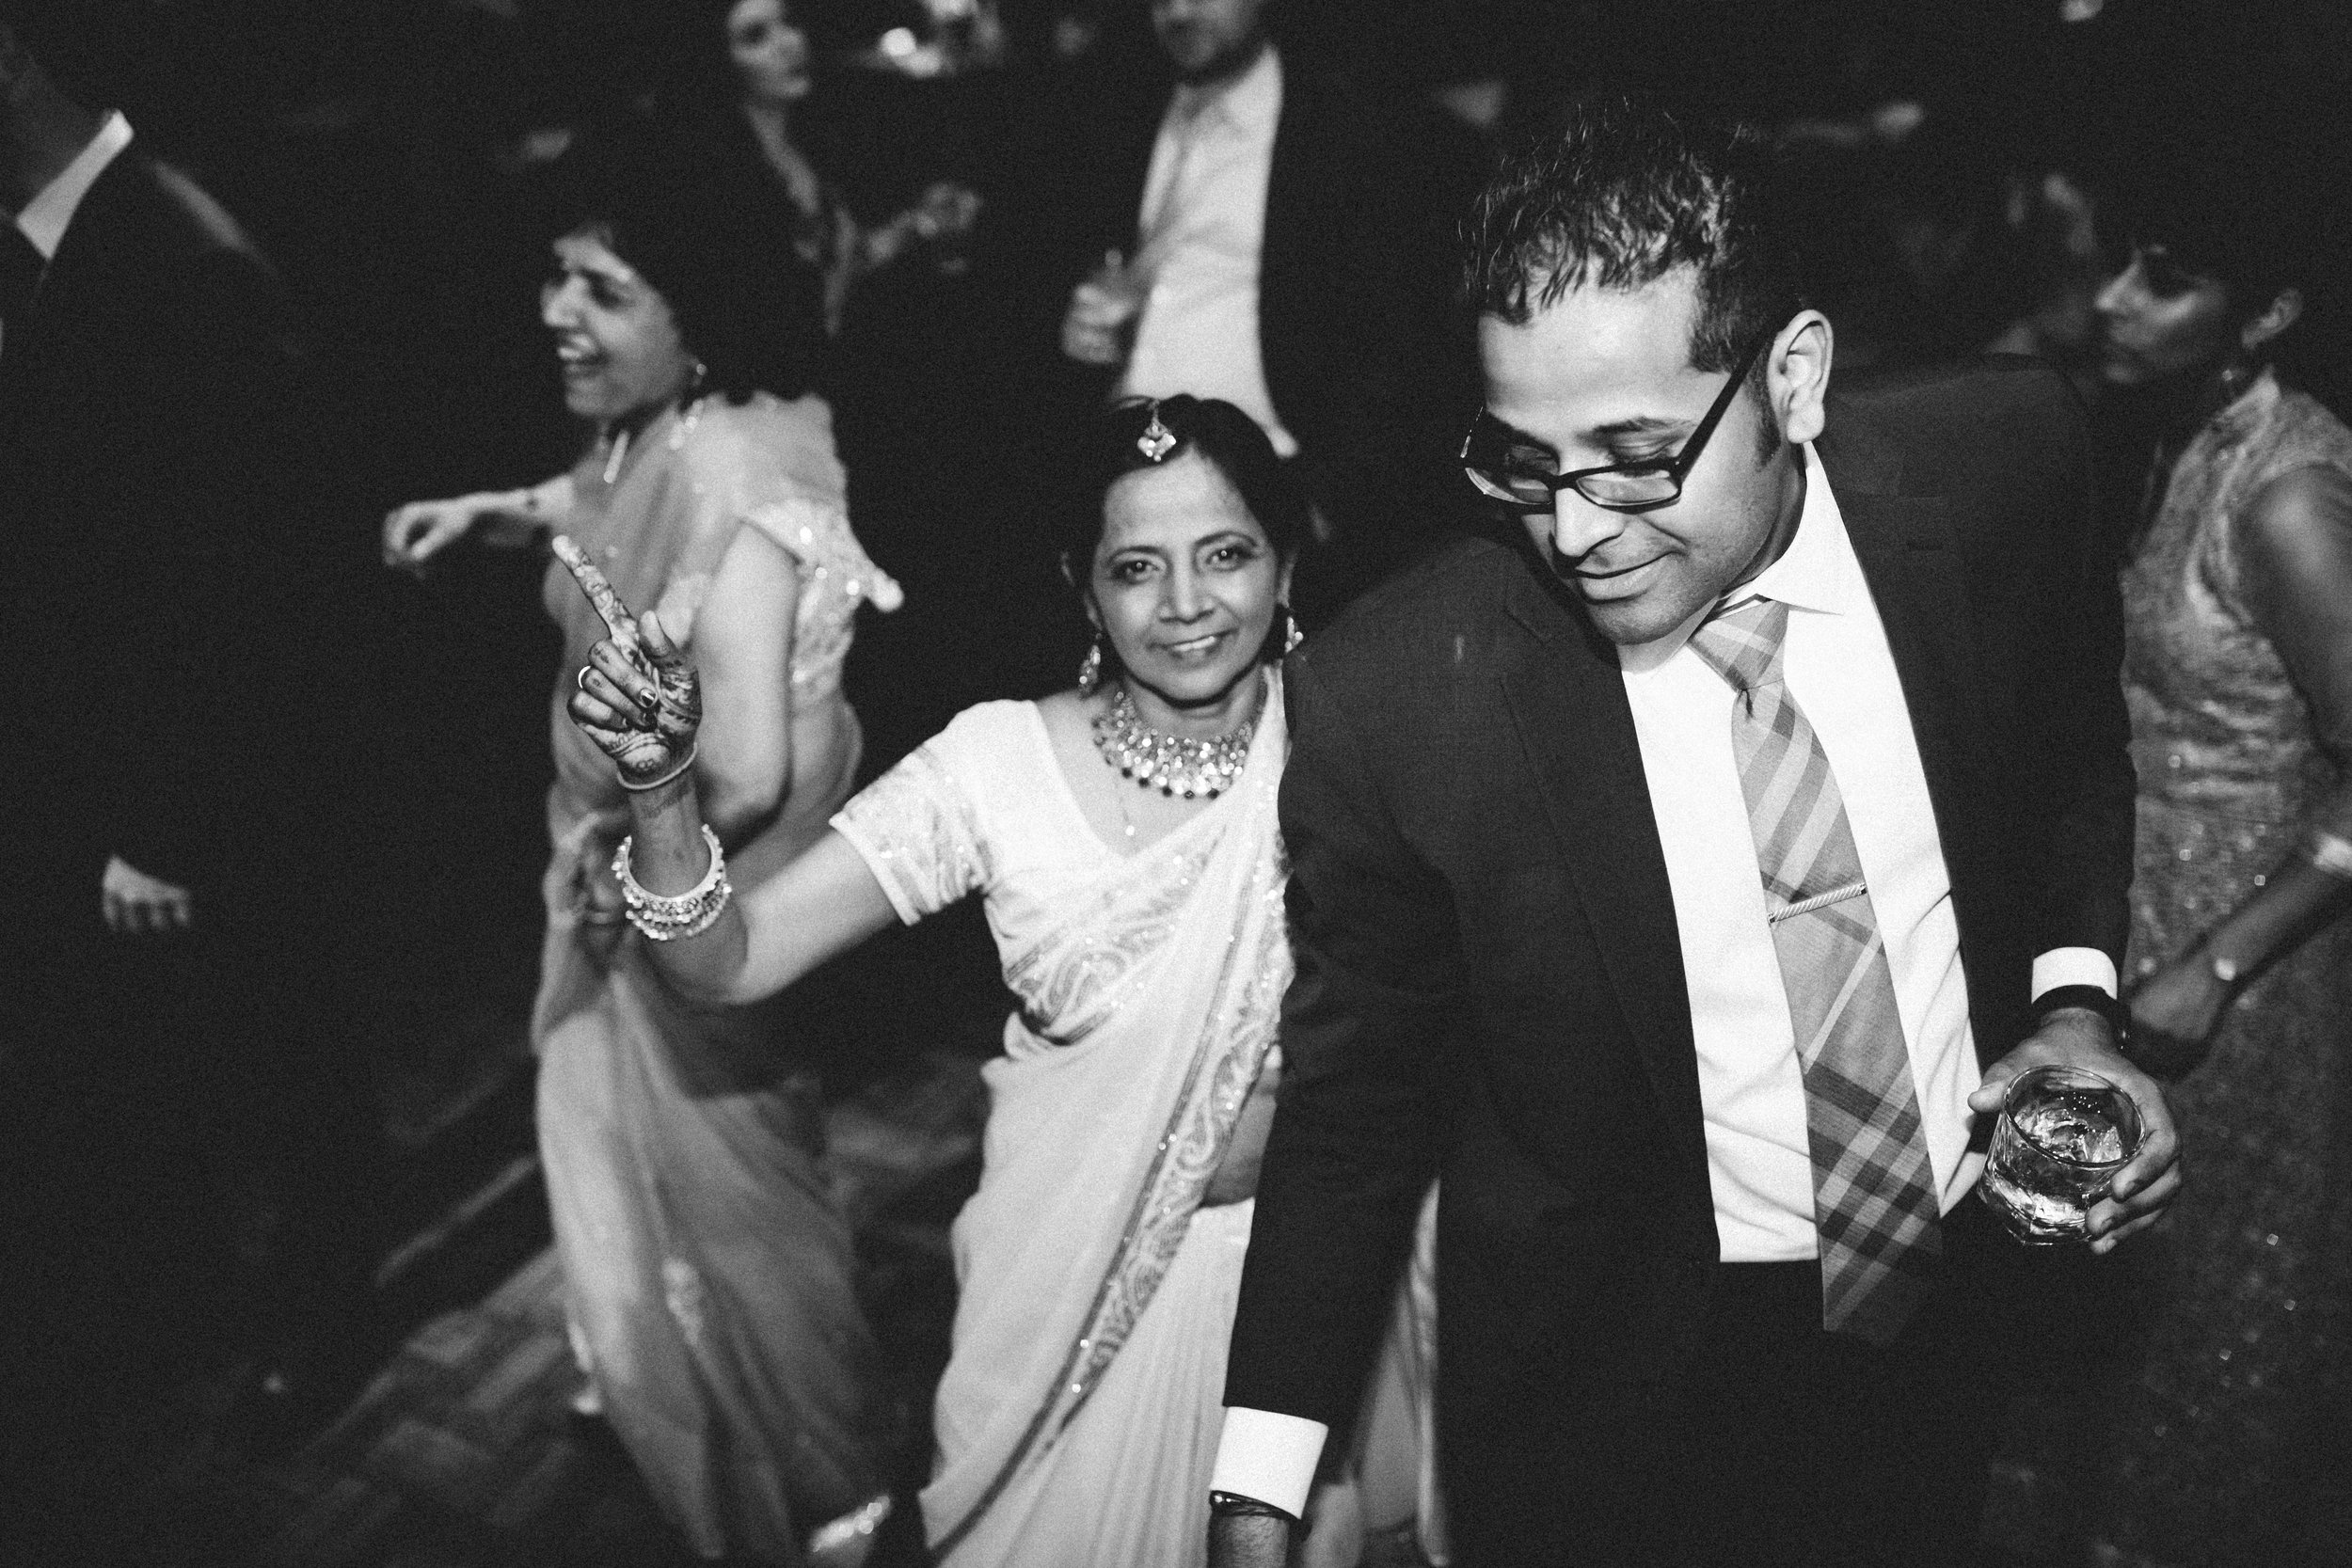 Aparna-Ankit-Patel-Shah-Michigan-indian-photography-Cinematography-videography-detroit-Grand Rapids-Mid West